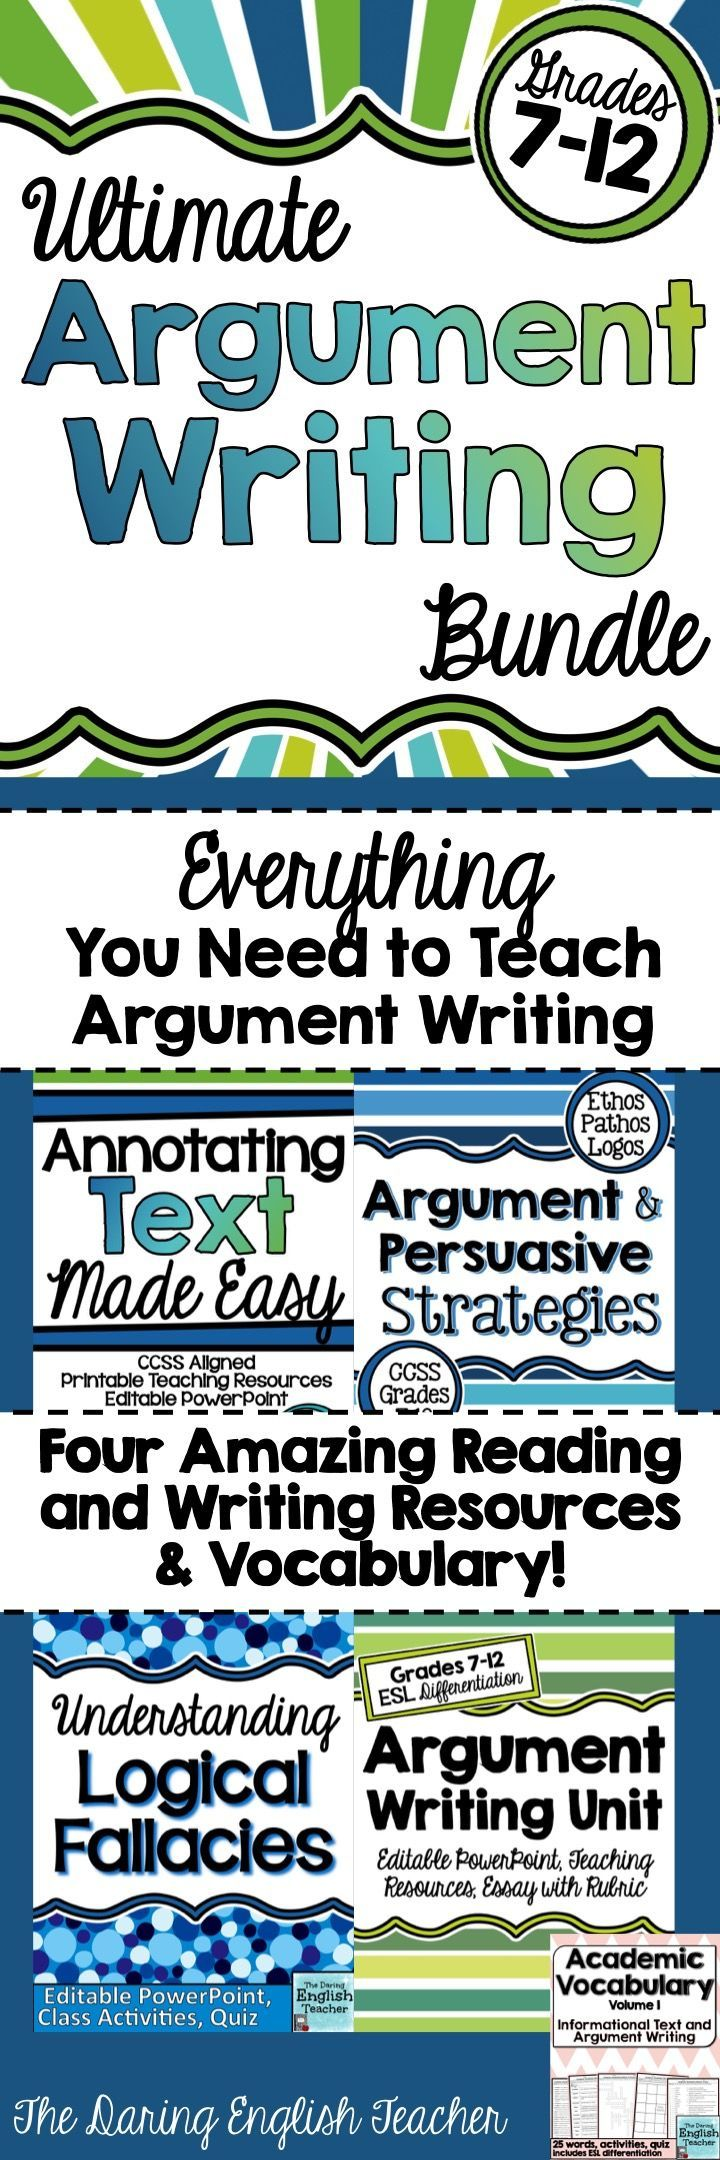 argumentative essay books A good introduction in an argumentative essay acts like a good opening statement in a trial just like a lawyer, a writer must present the issue at hand, give background, and put forth the main.